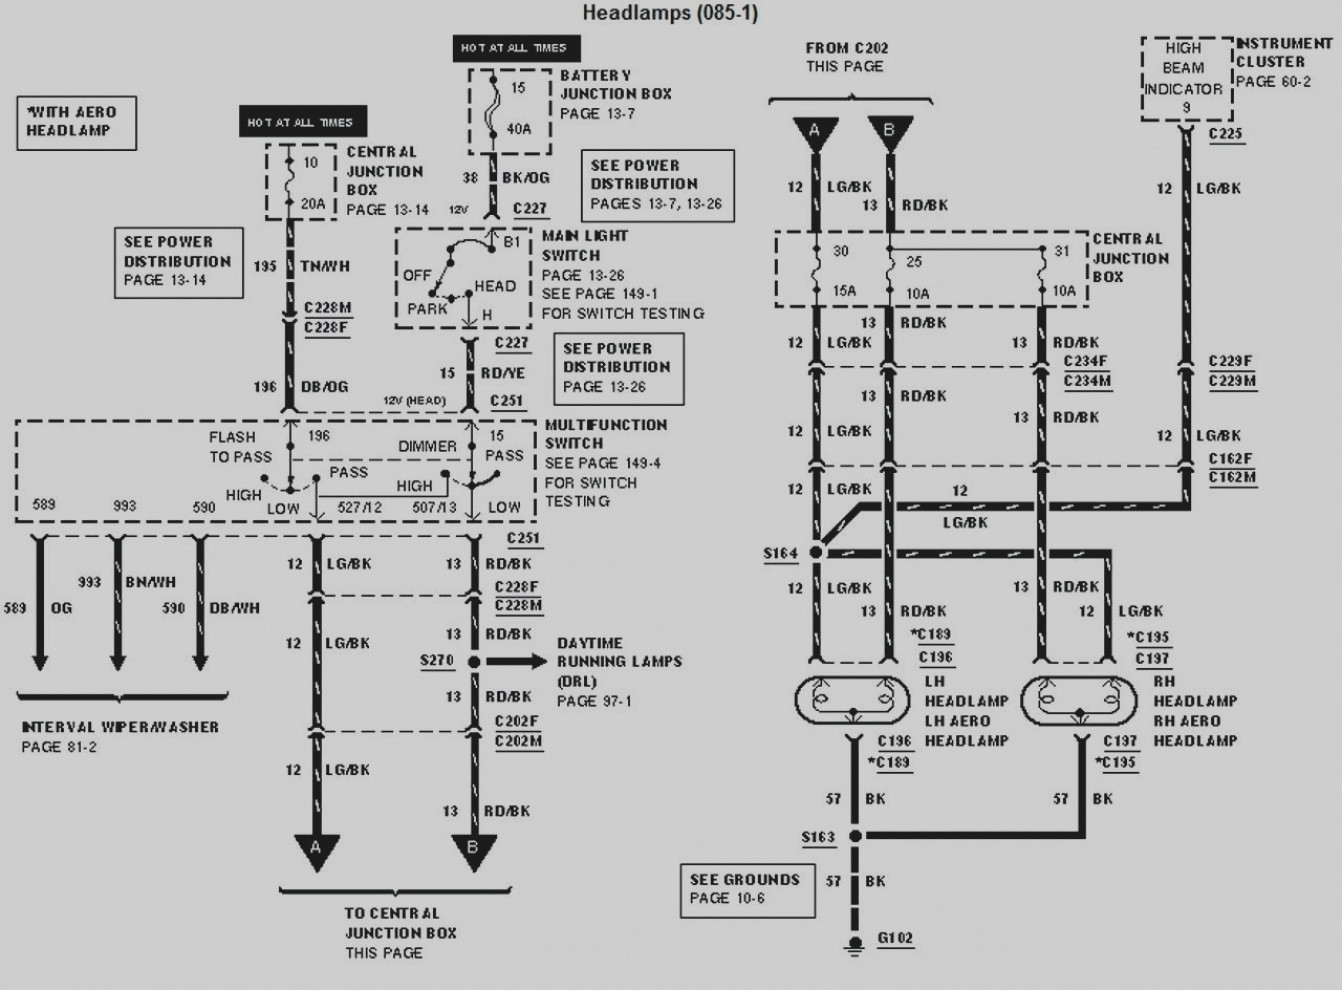 07 Ford F53 Wiring Diagram | Wiring Schematic Diagram  Coachmen Wiring Diagram on gulfstream wiring diagram, sunnybrook wiring diagram, wildcat wiring diagram, thor wiring diagram, viking wiring diagram, kodiak wiring diagram, flagstaff wiring diagram, roadtrek wiring diagram, georgie boy wiring diagram, geo wiring diagram, american wiring diagram, evergreen wiring diagram, challenger wiring diagram, haulmark wiring diagram, alpenlite wiring diagram, winnebago wiring diagram, inverter wiring diagram, sandpiper wiring diagram, rv wiring diagram, country coach wiring diagram,